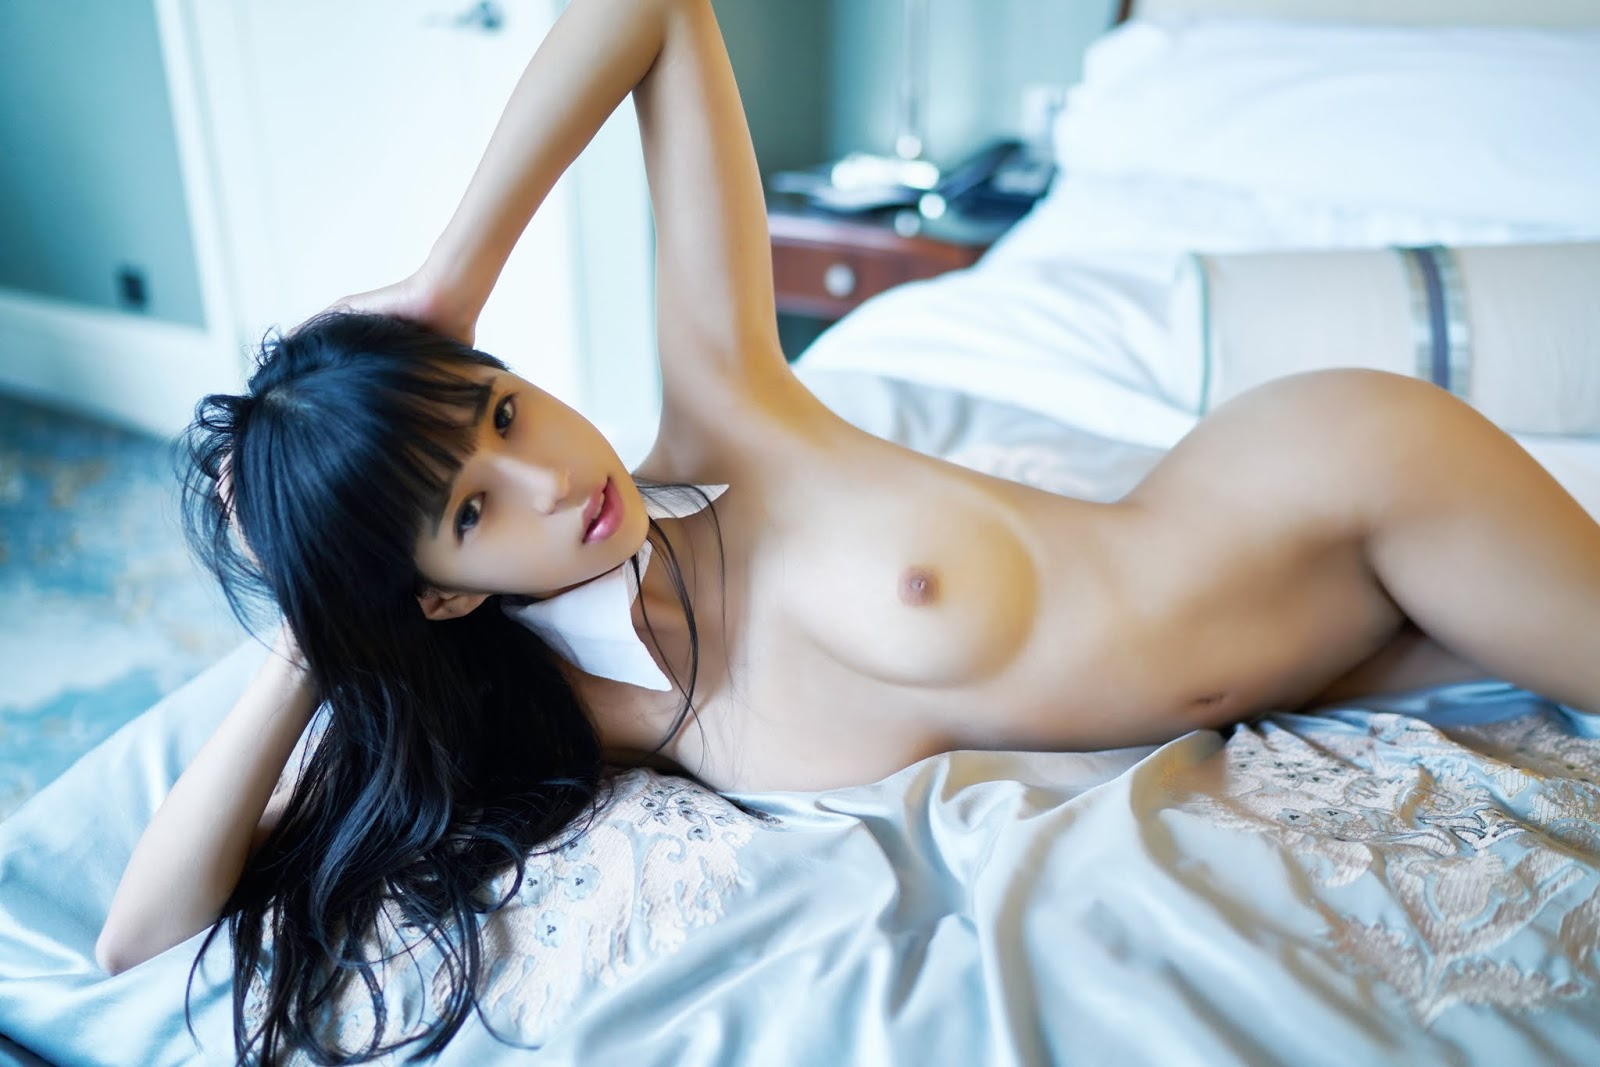 Beautiful sexy hot chinese girls wallpapers hq for android